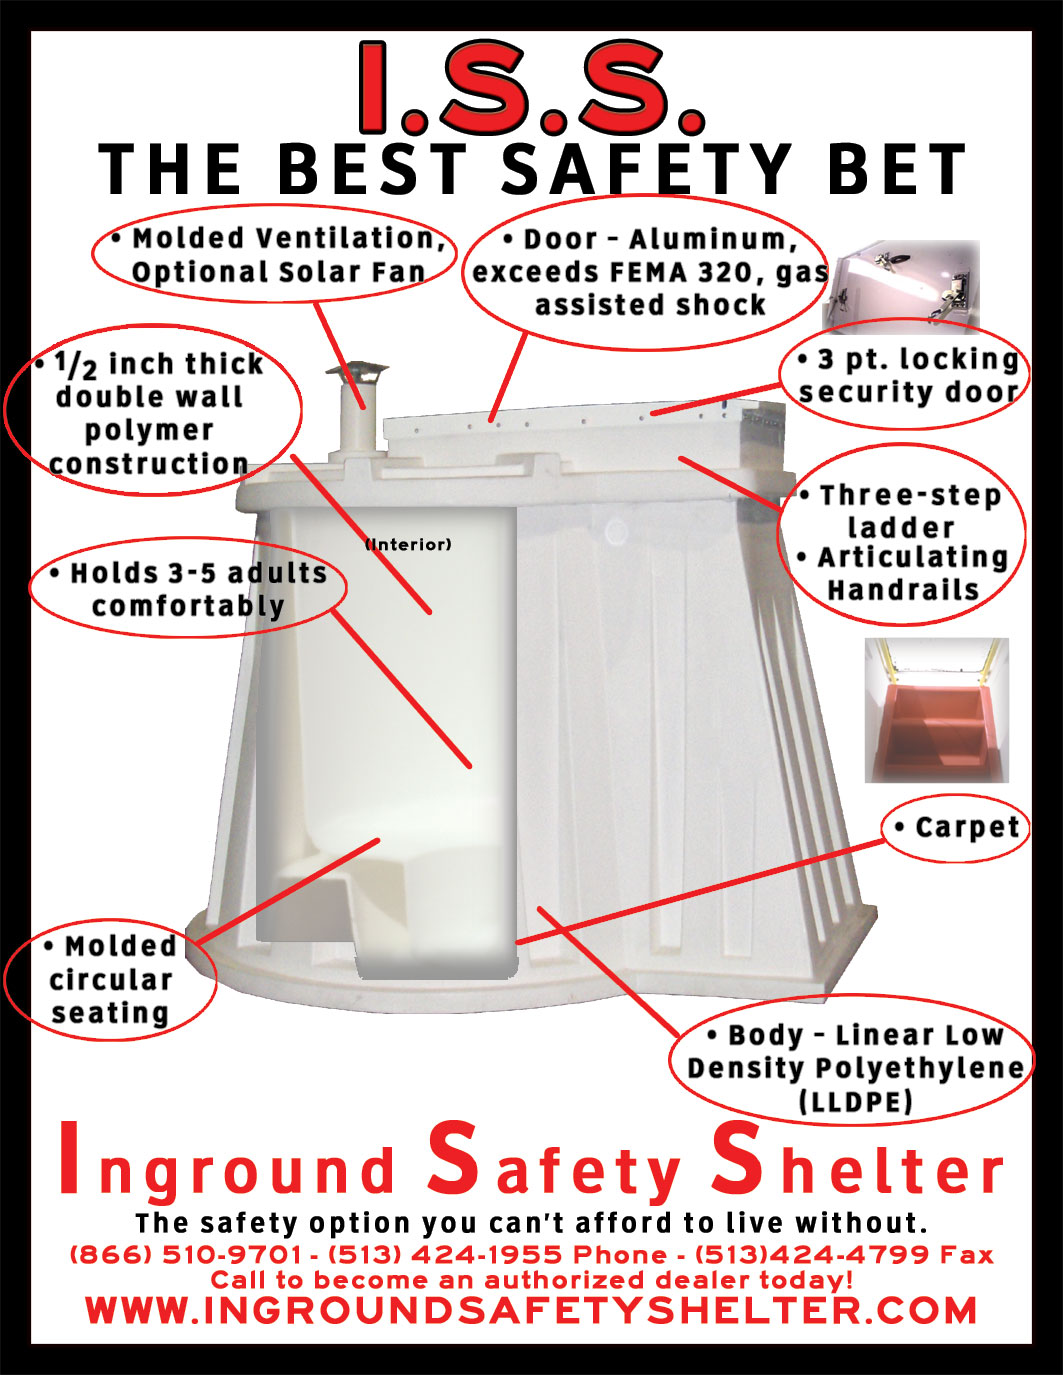 Inground Safety Shelter Tornado From Tornadoes Storm Plastic